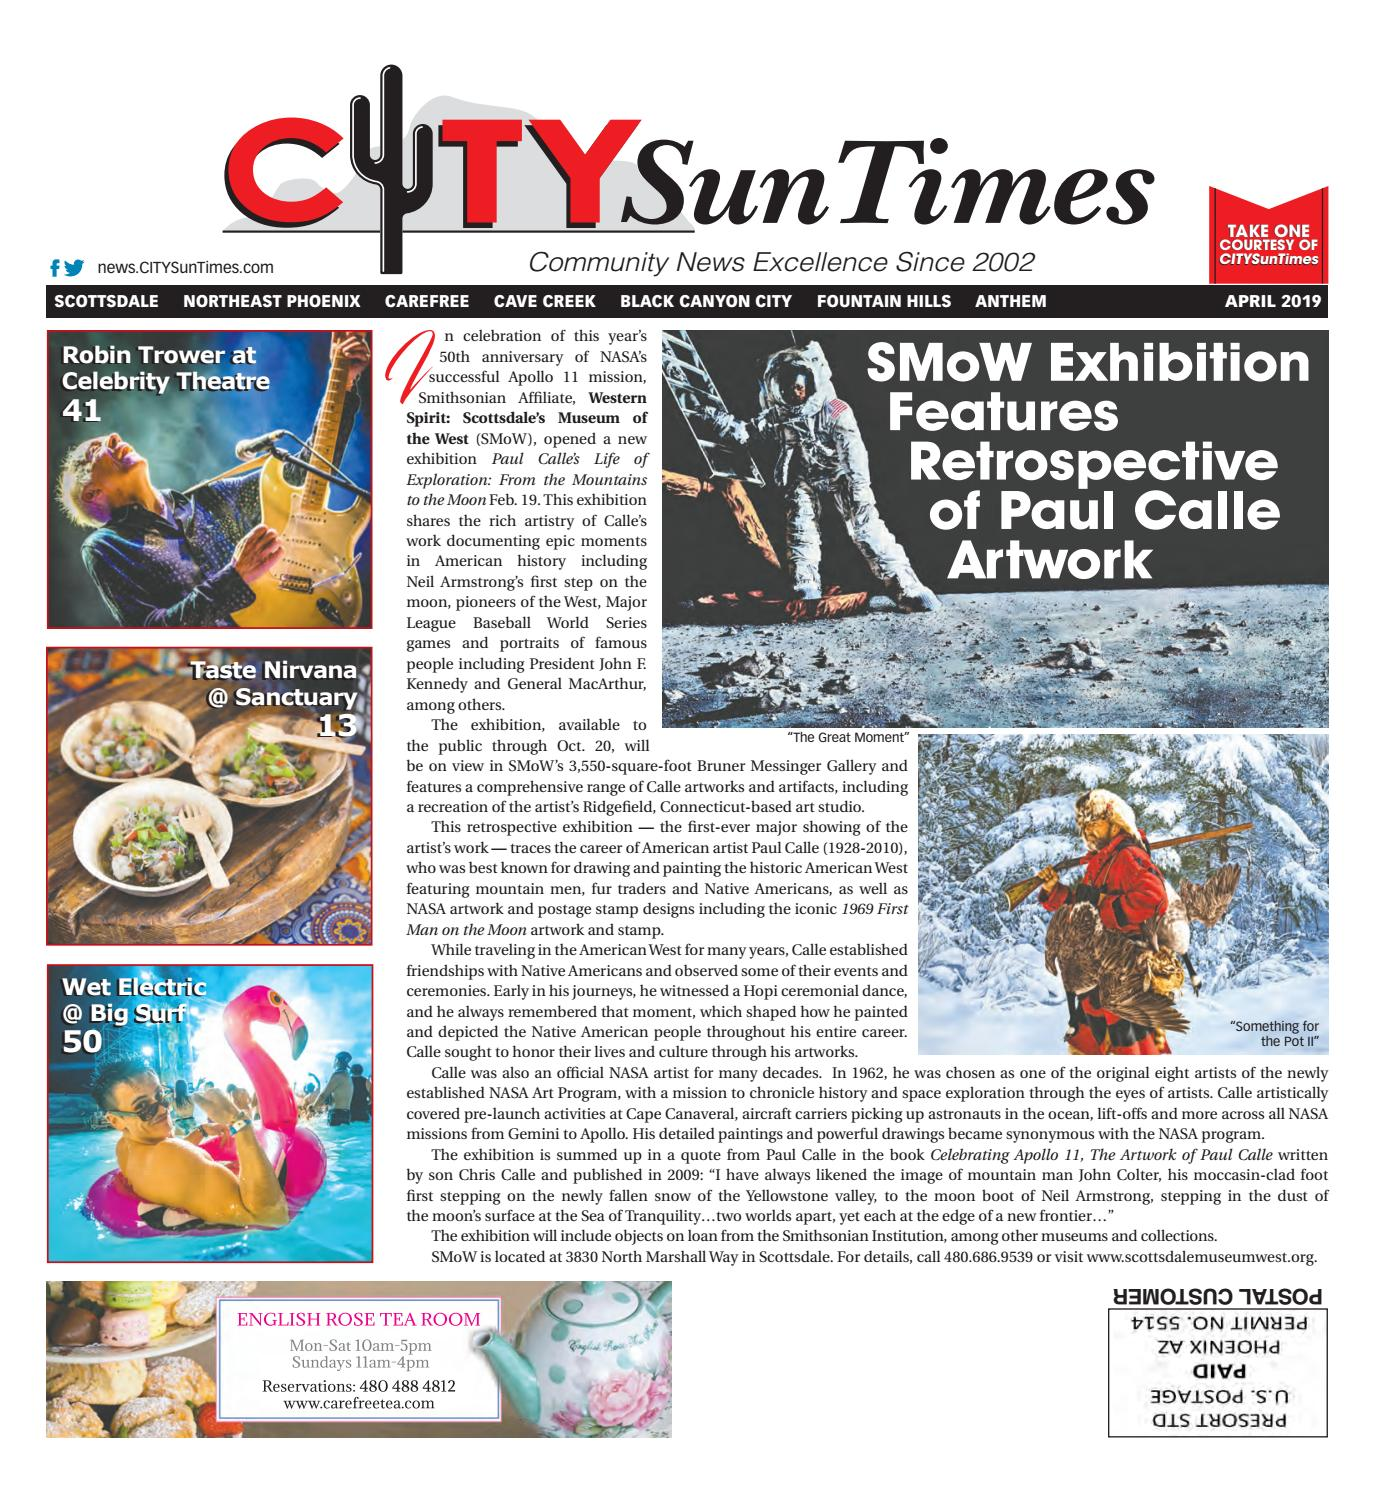 North Valley April 2019 CITYSunTimes